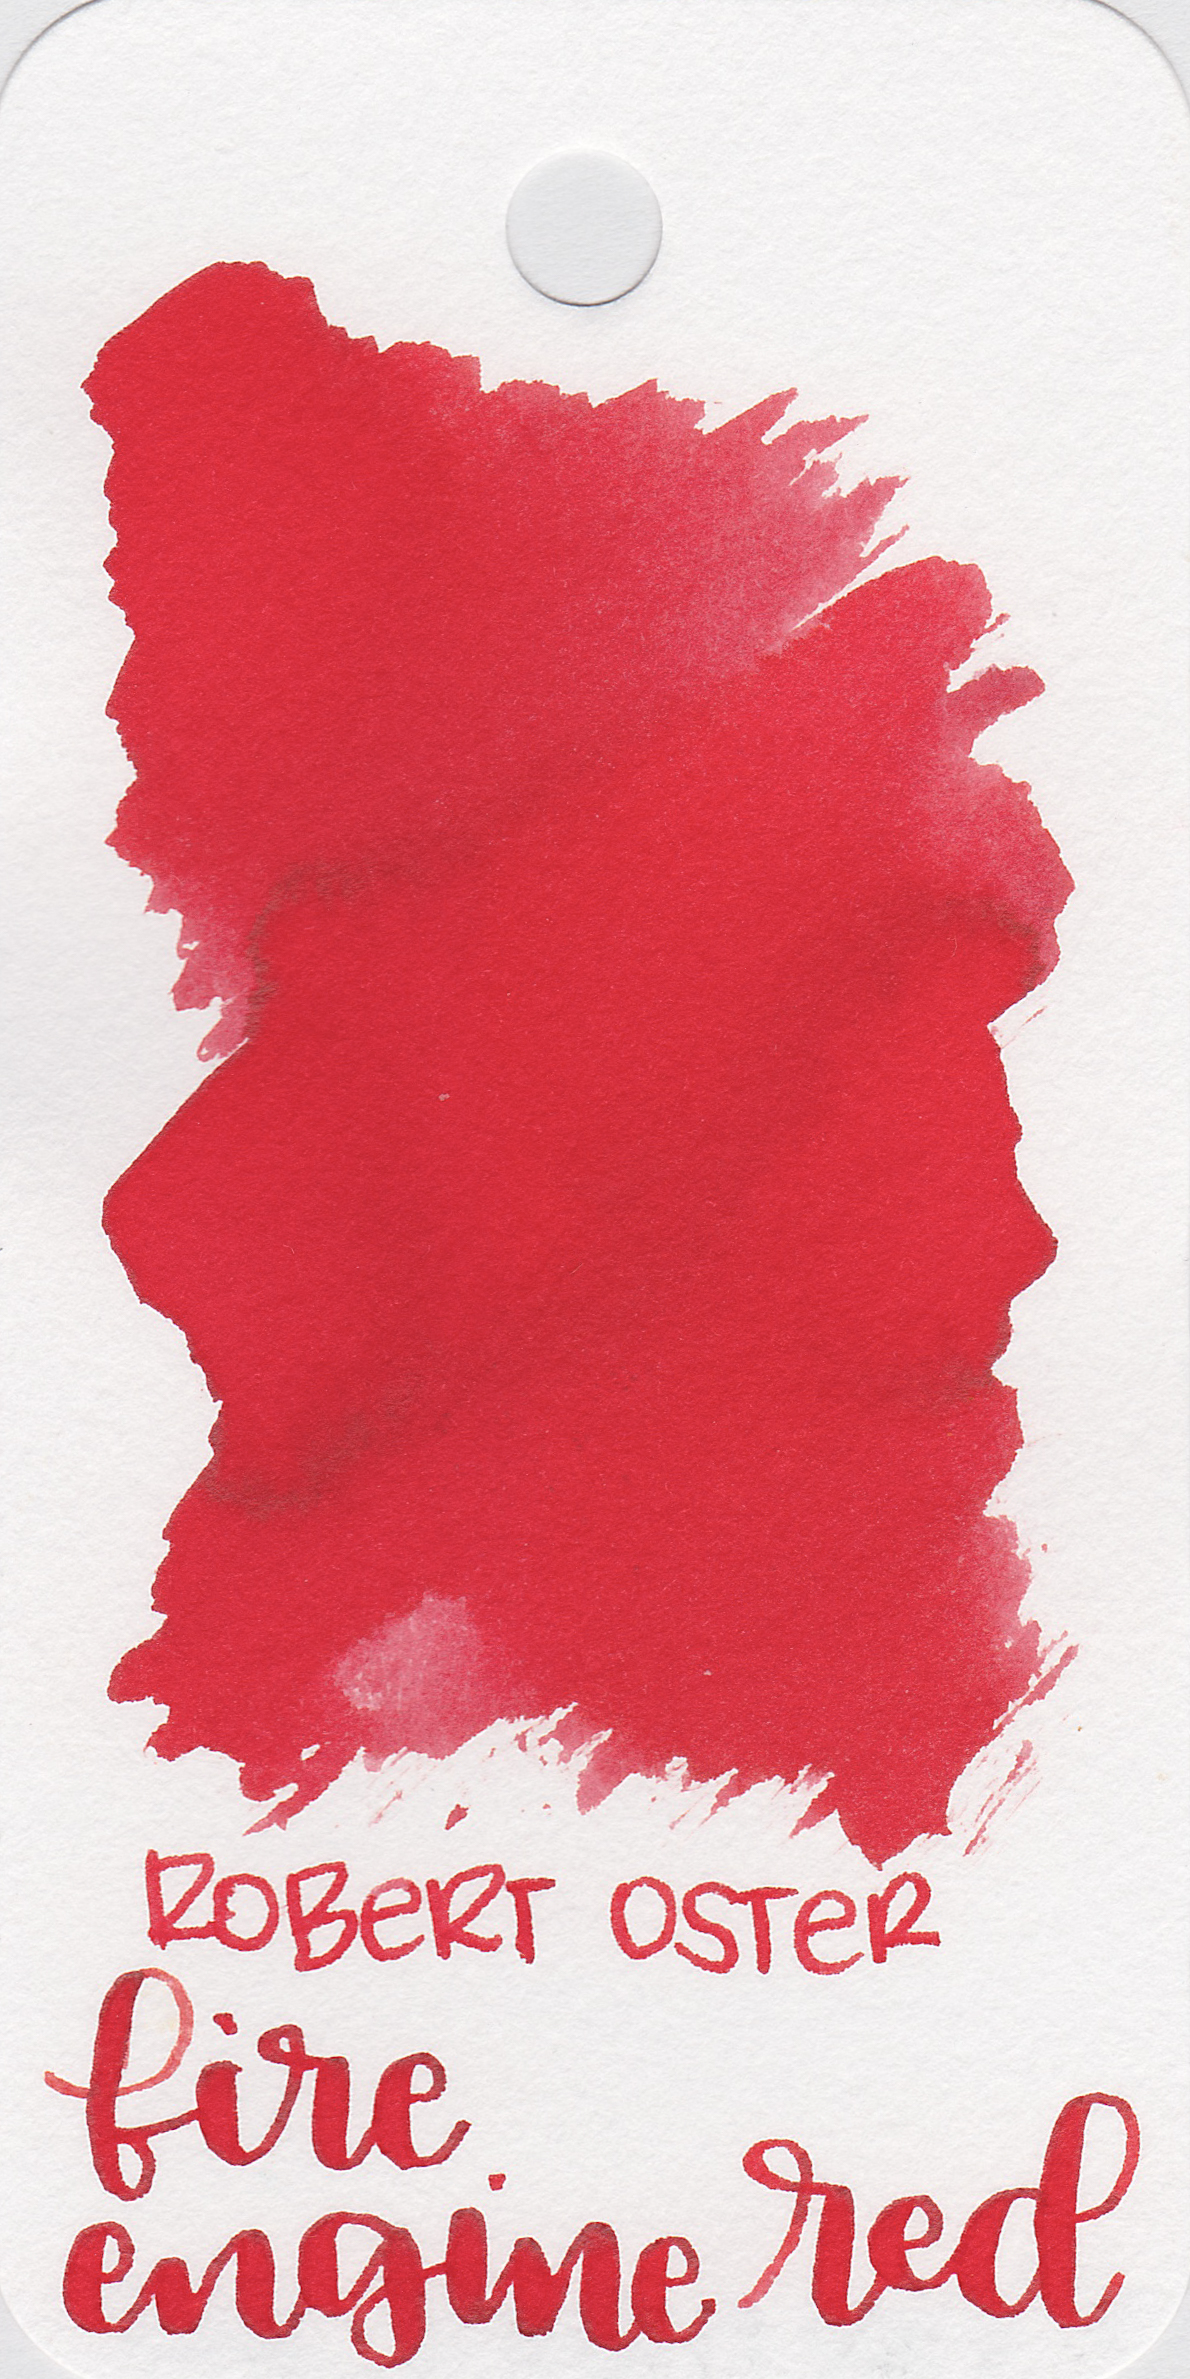 The color: - Fire Engine Red is a bright red.